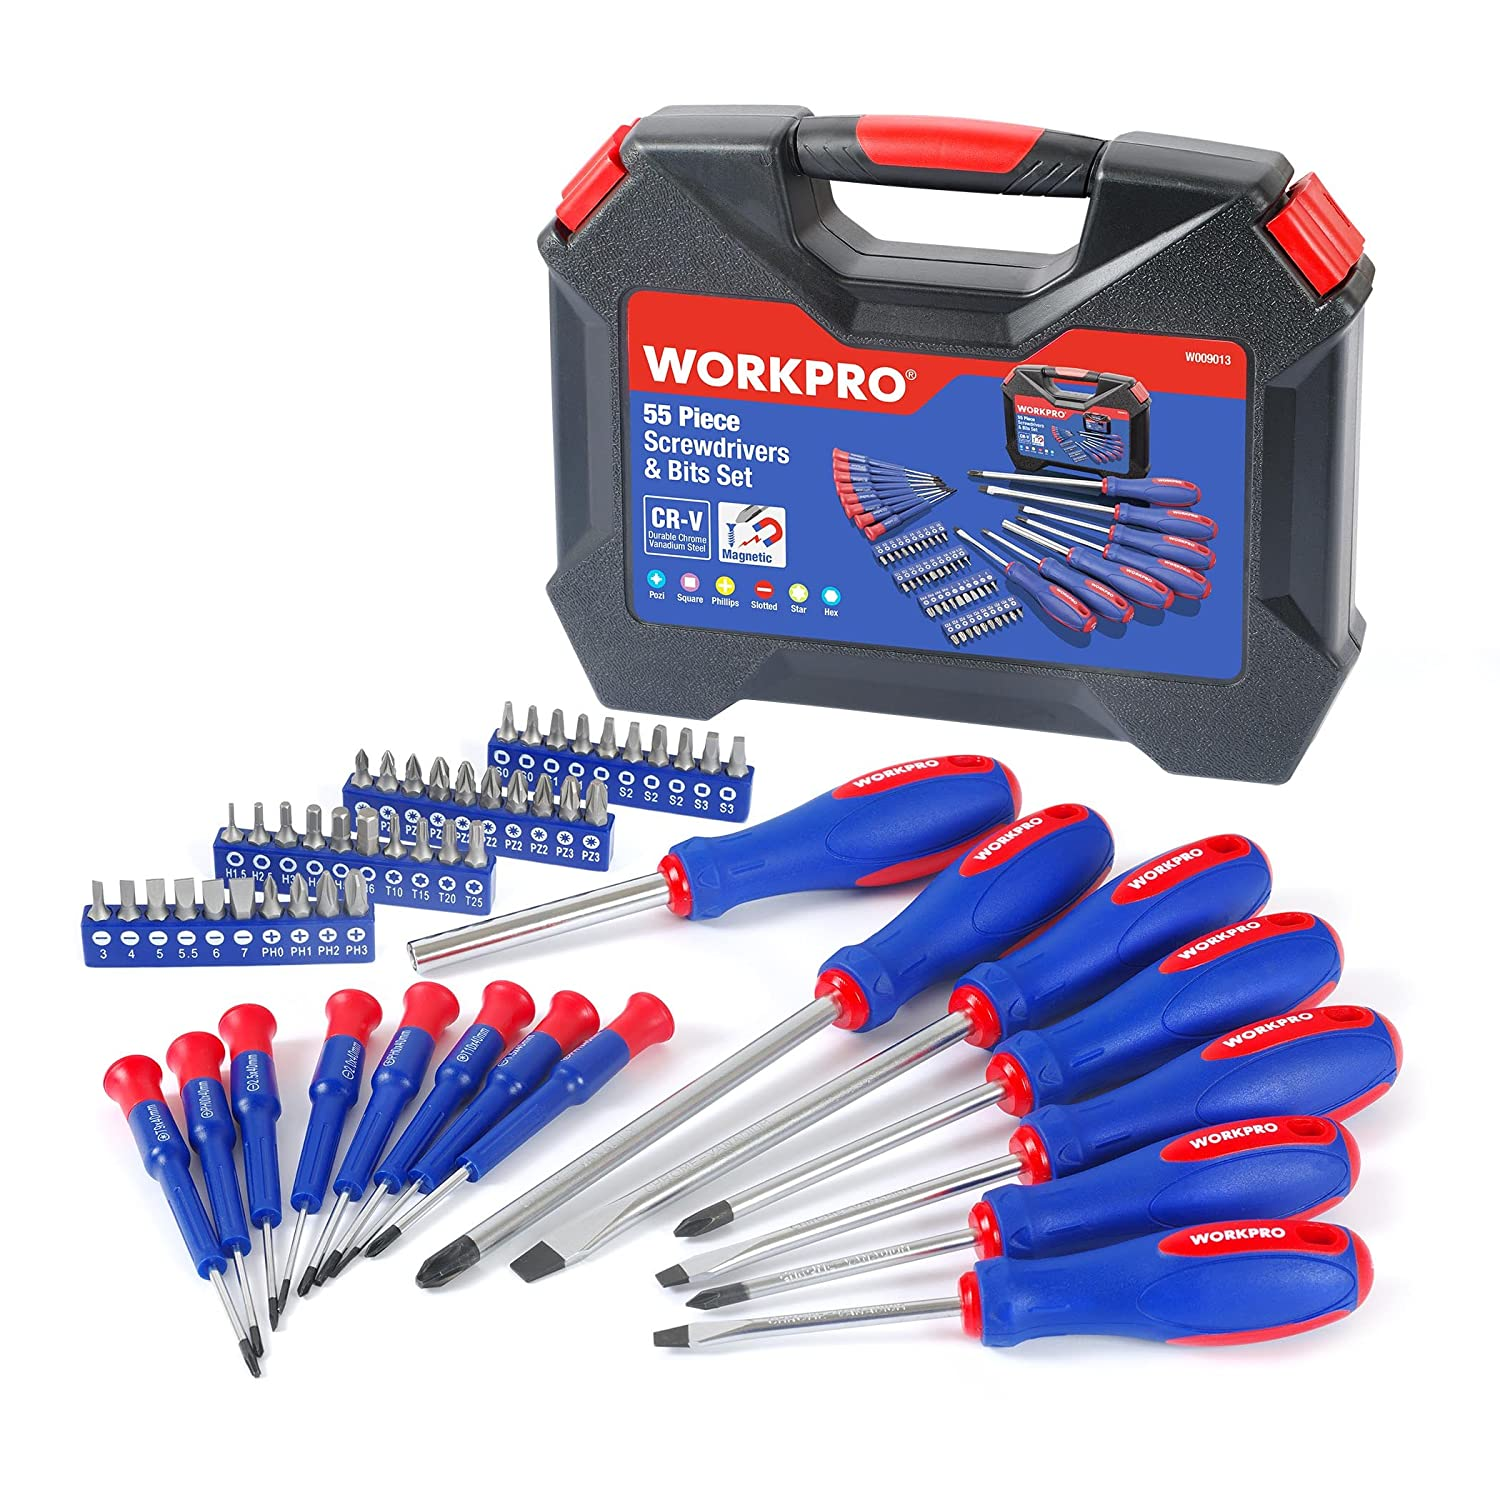 WORKPRO 56-Piece Screwdriver and Bits Set with Blow Molded Case W009013A